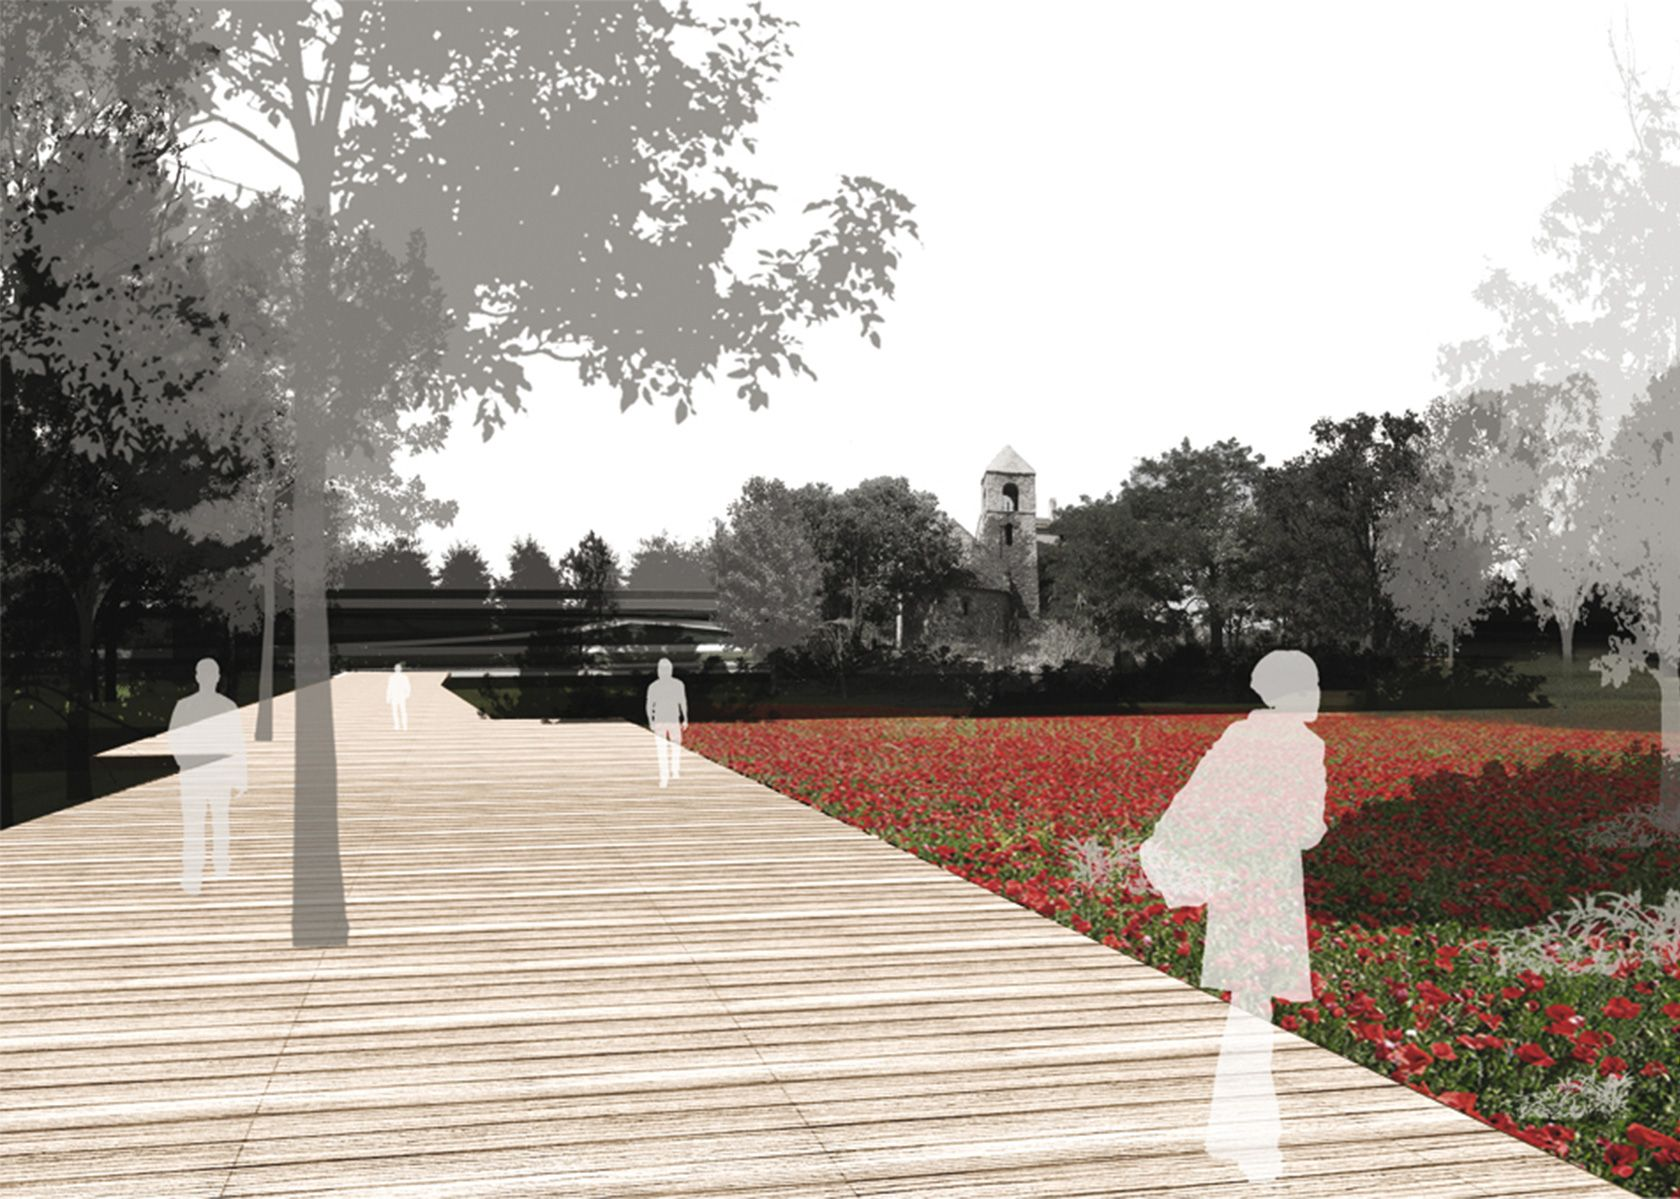 cunit public spaces landscaping architecture anna noguera